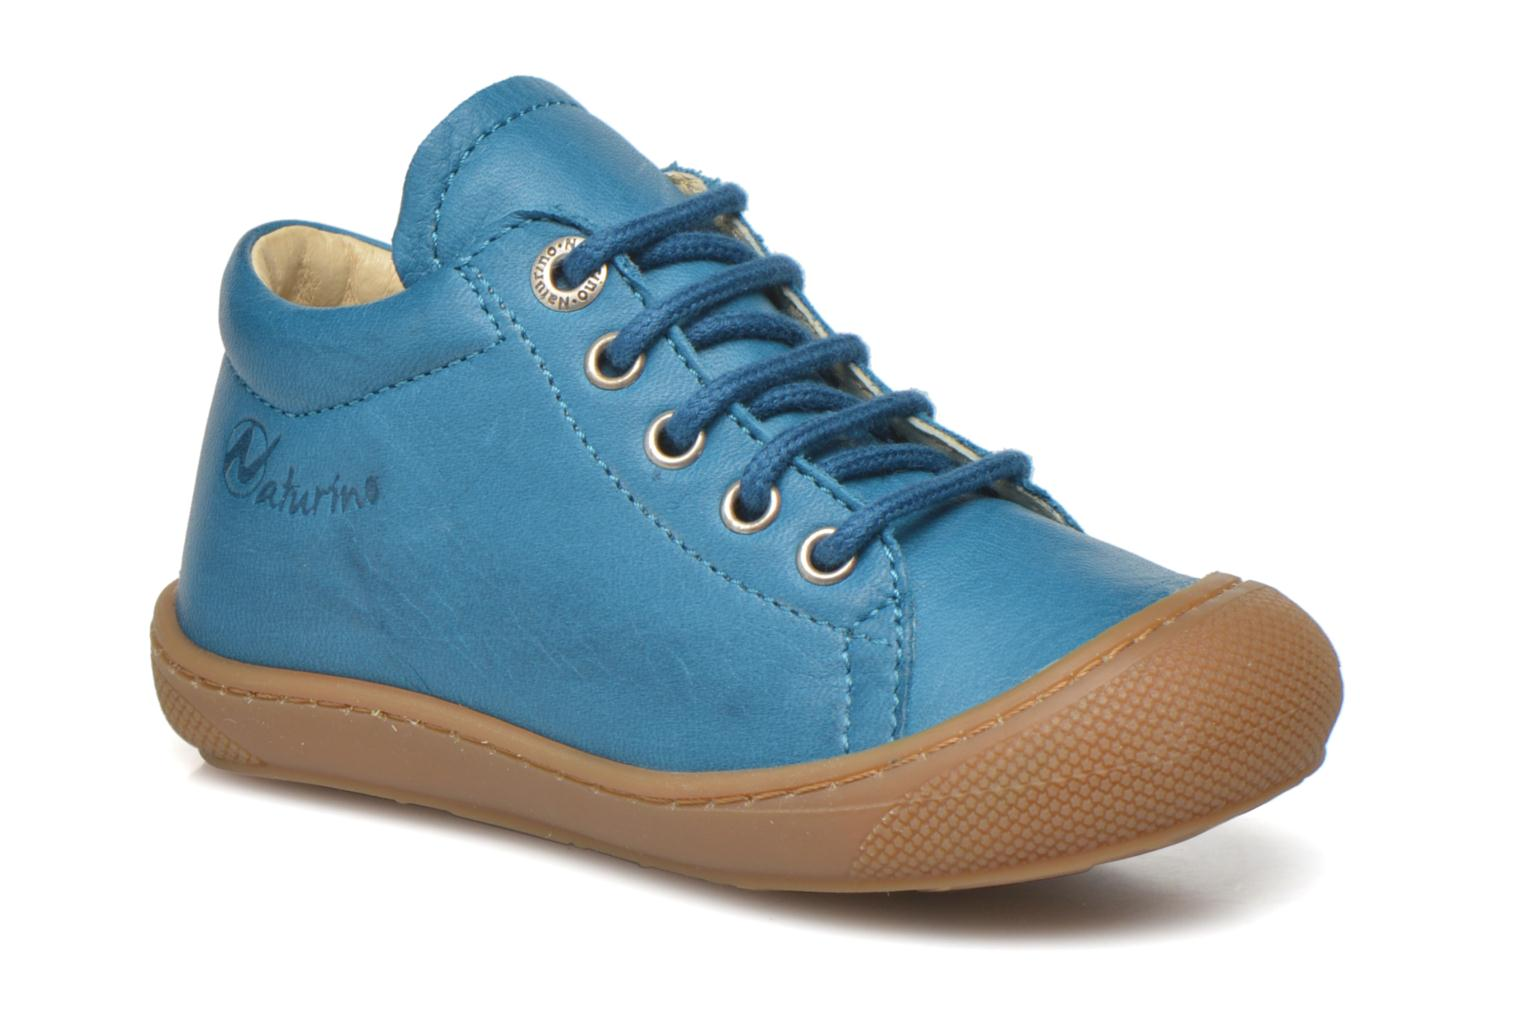 Sneakers Camilo 3972 by Naturino